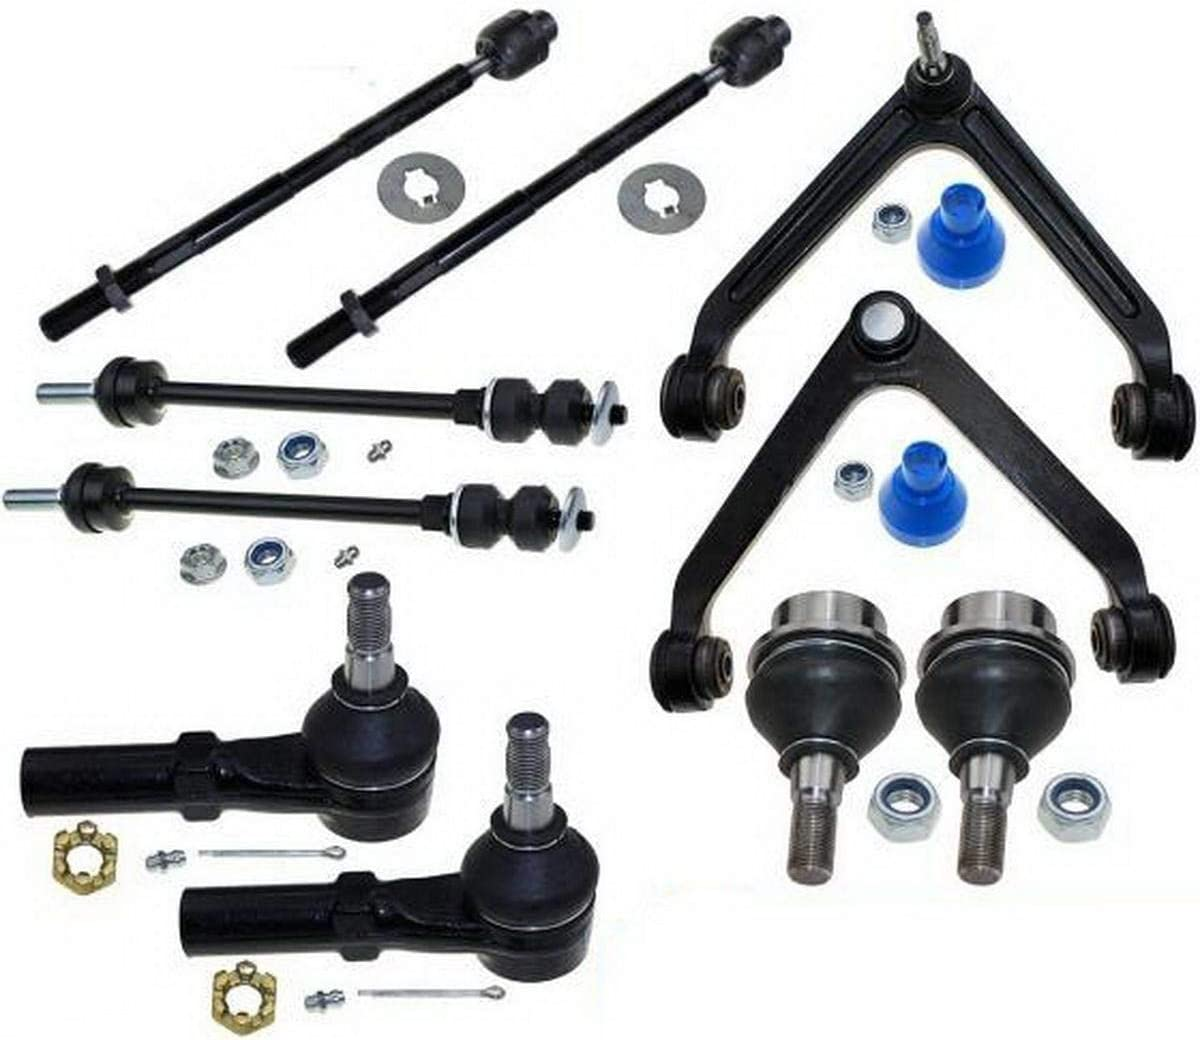 Three Years Warranty Front Left Upper Suspension Control Arm and Ball Joint Assembly For 2015 Ford F-150 XL 5.0 Liter V8 Stirling